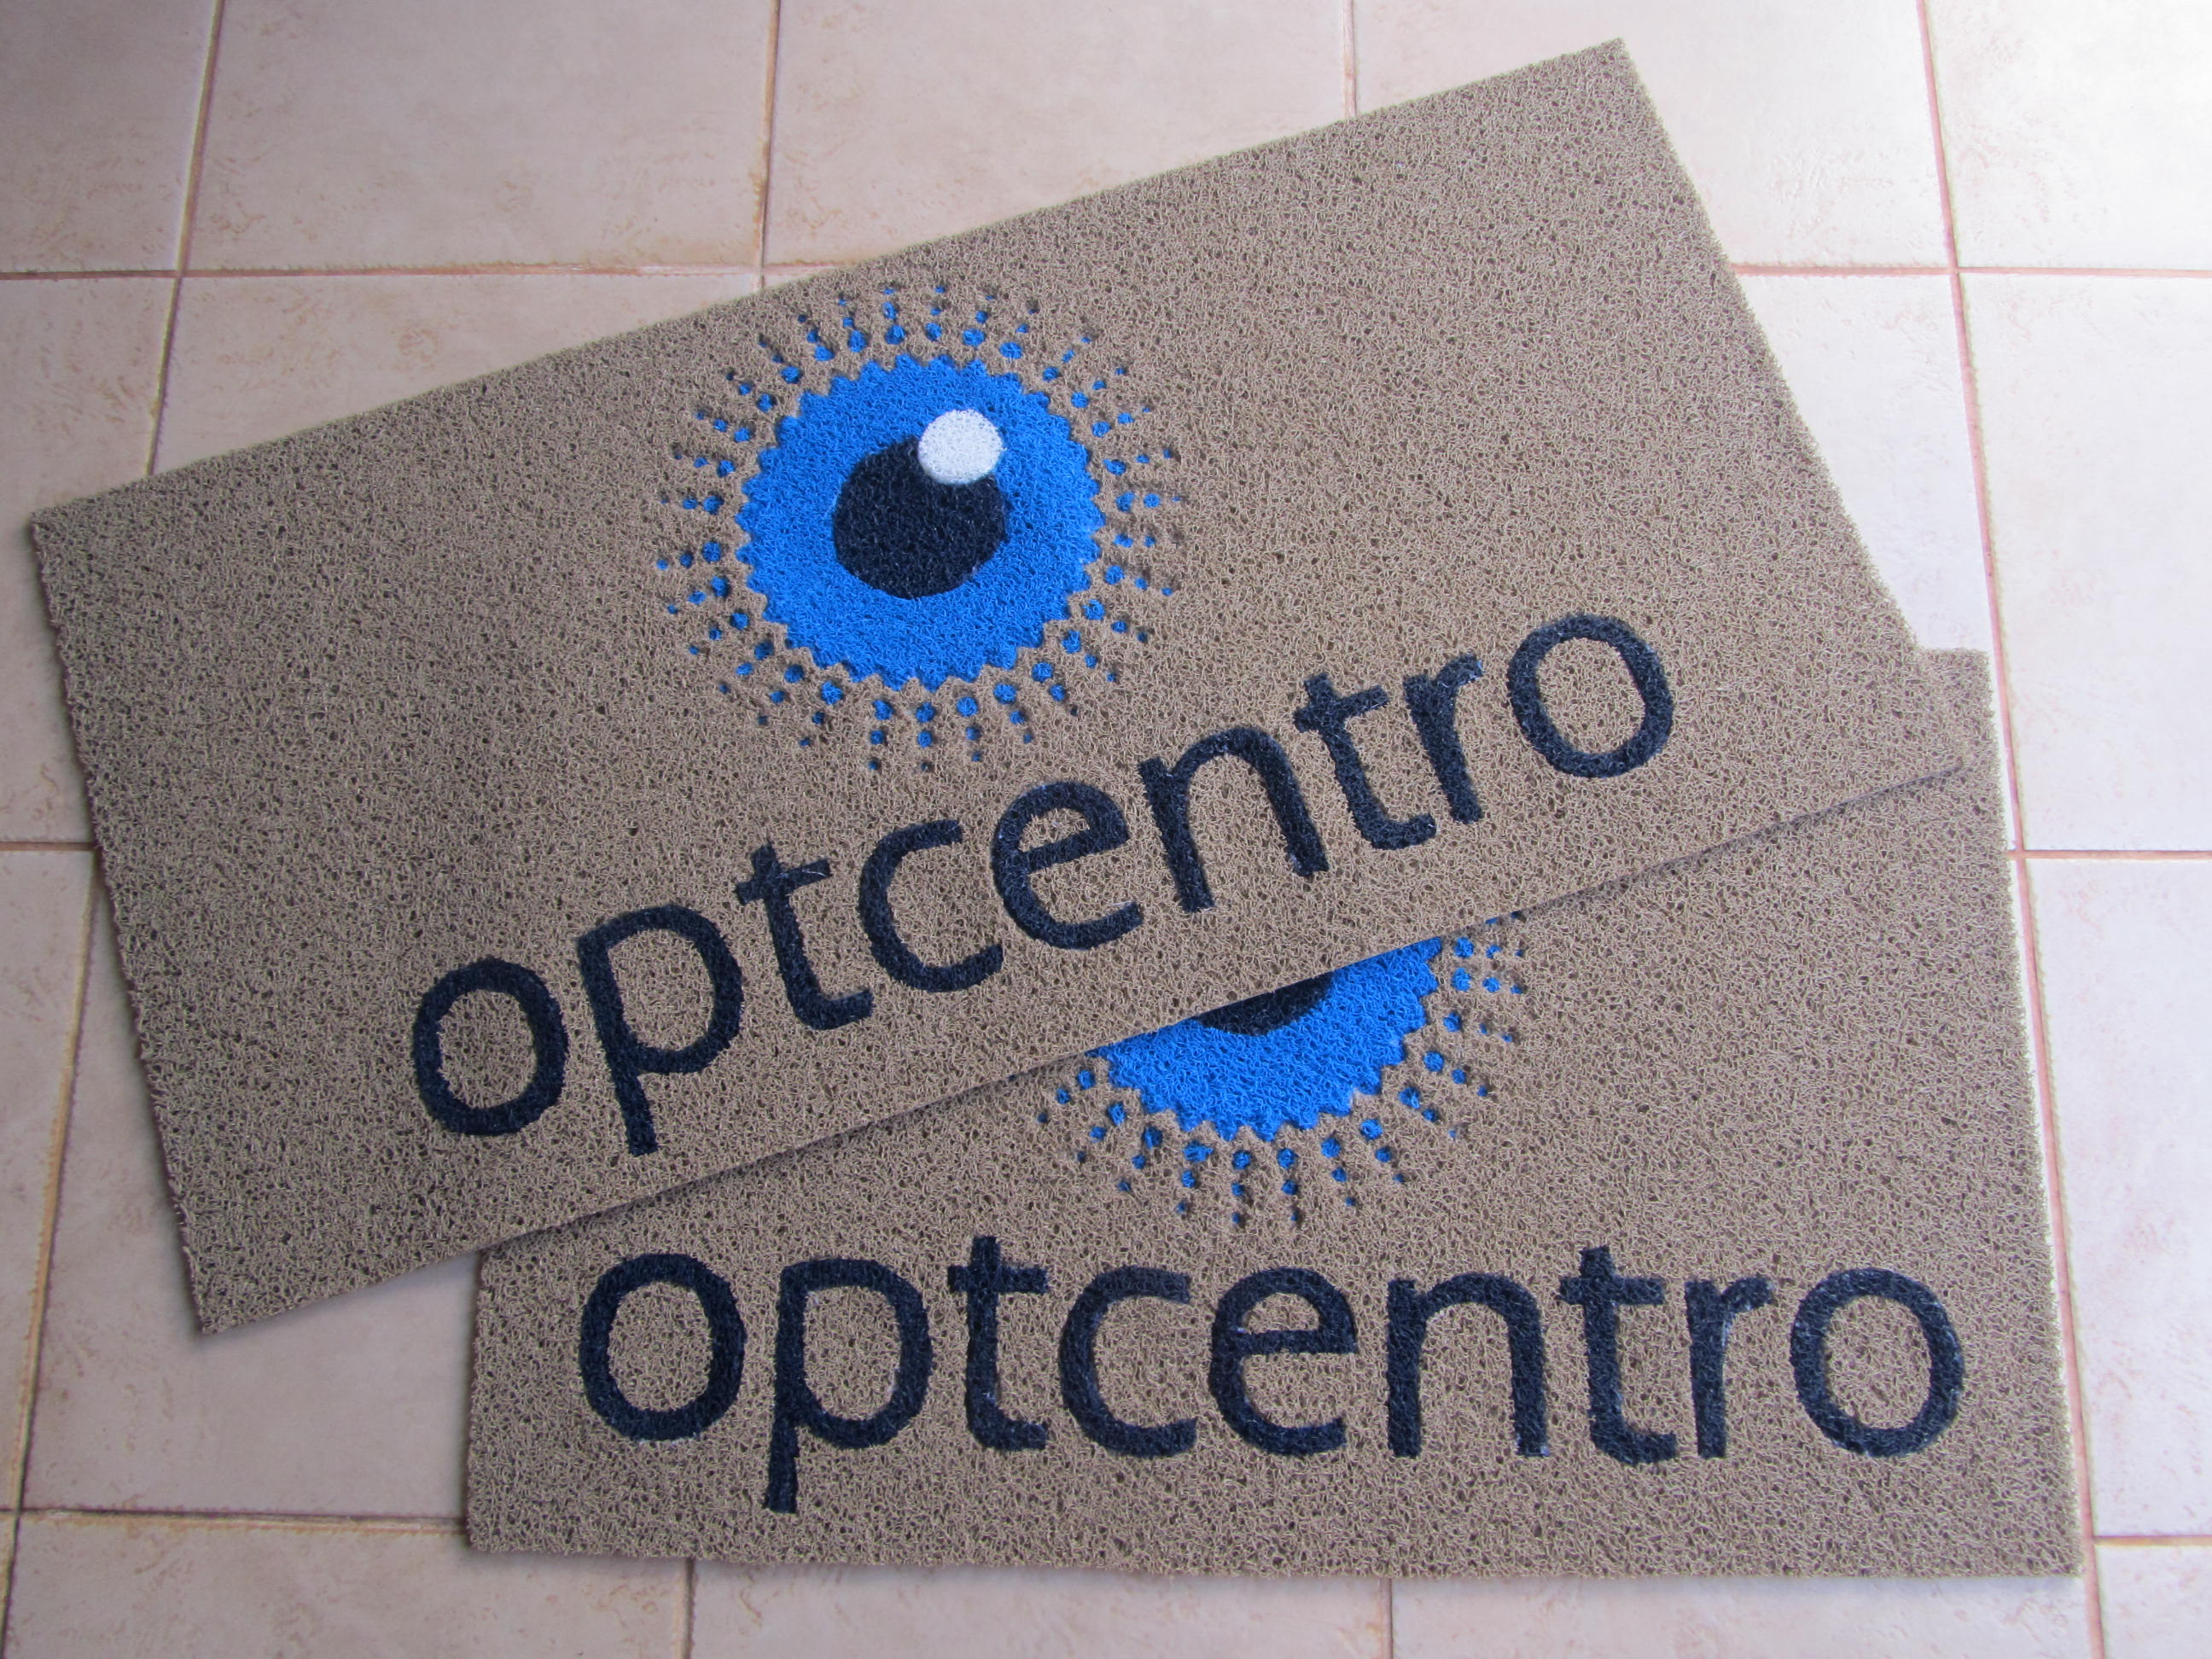 Optcentro